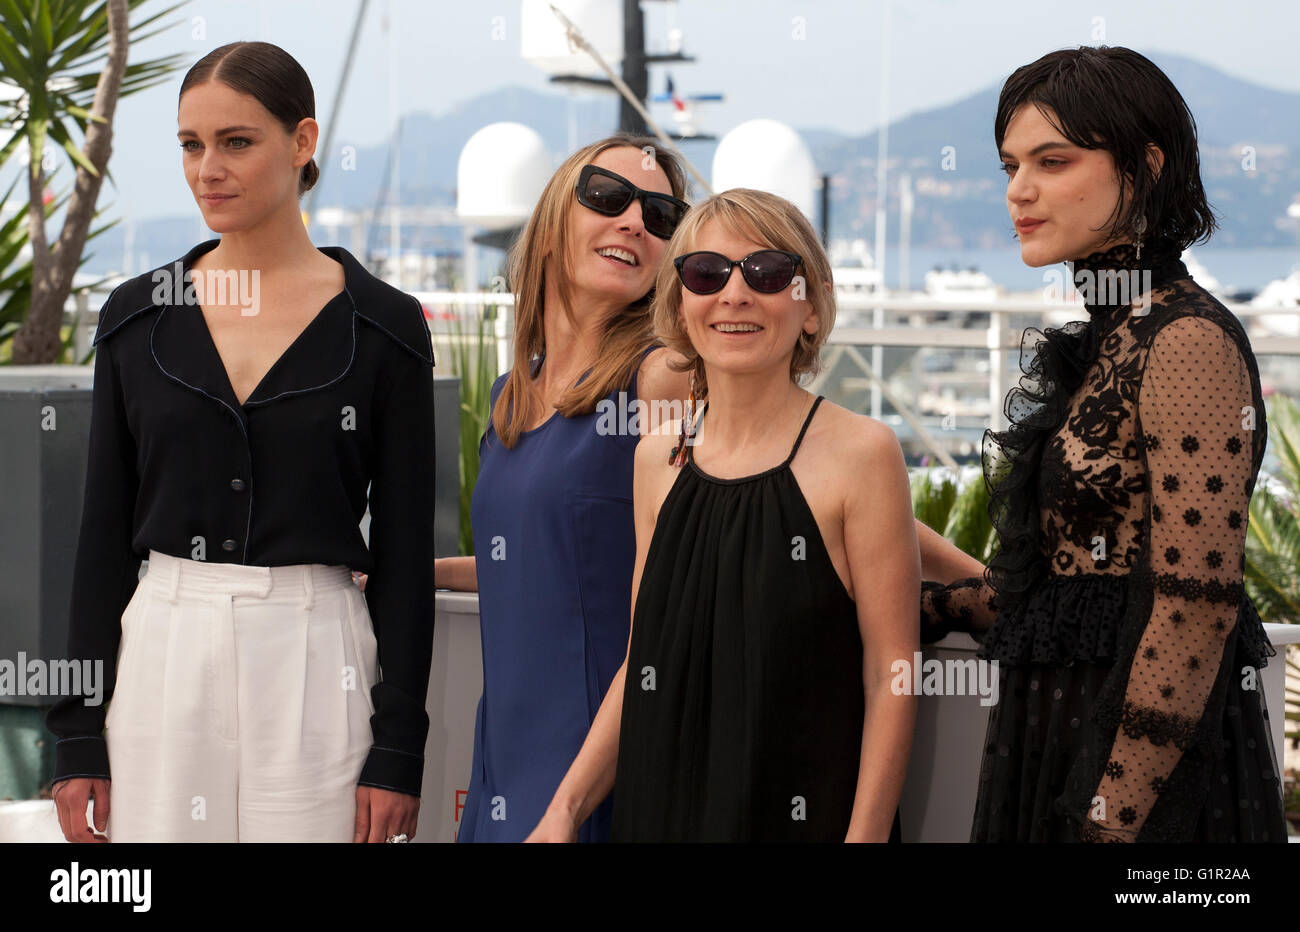 Actress Ariane Labed, Directors Delphine Coulin and Muriel Coulin and actress Soko at the The Stopover (Voir Du - Stock Image